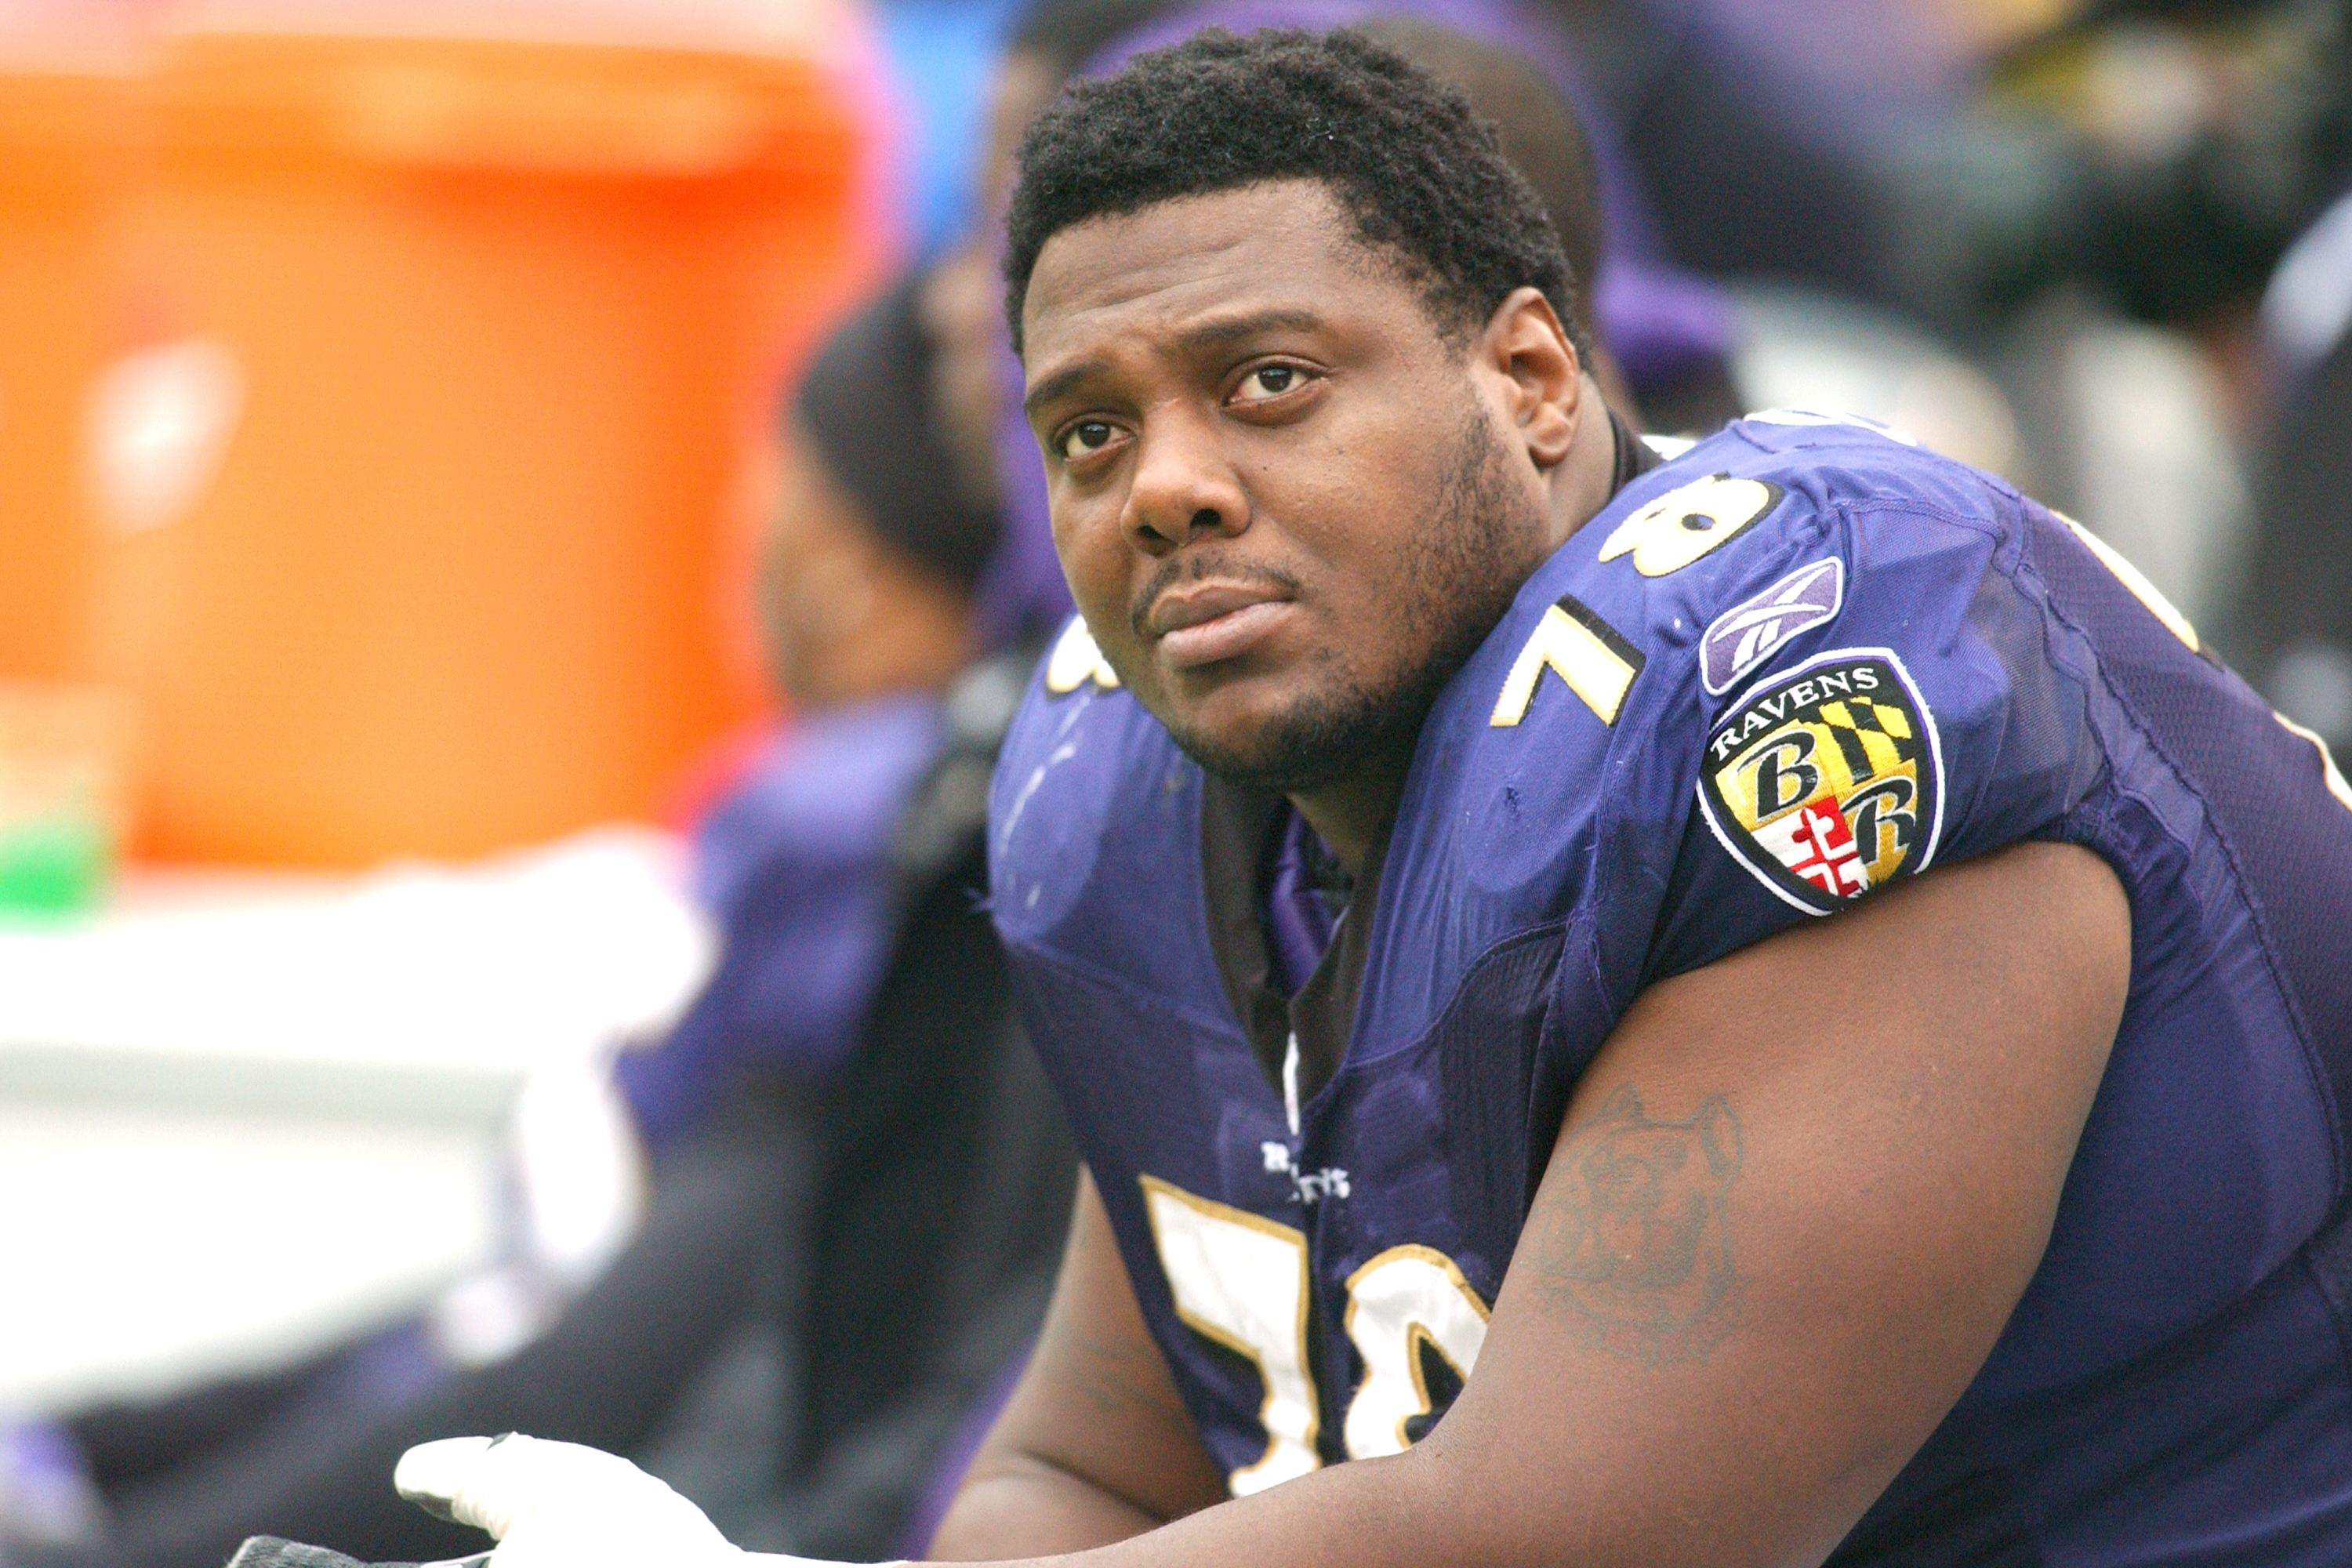 Orlando Brown Sr. was on his way to be a Baltimore Ravens legend. A horrific injury ended Brown's career before his tragic death in 2011.